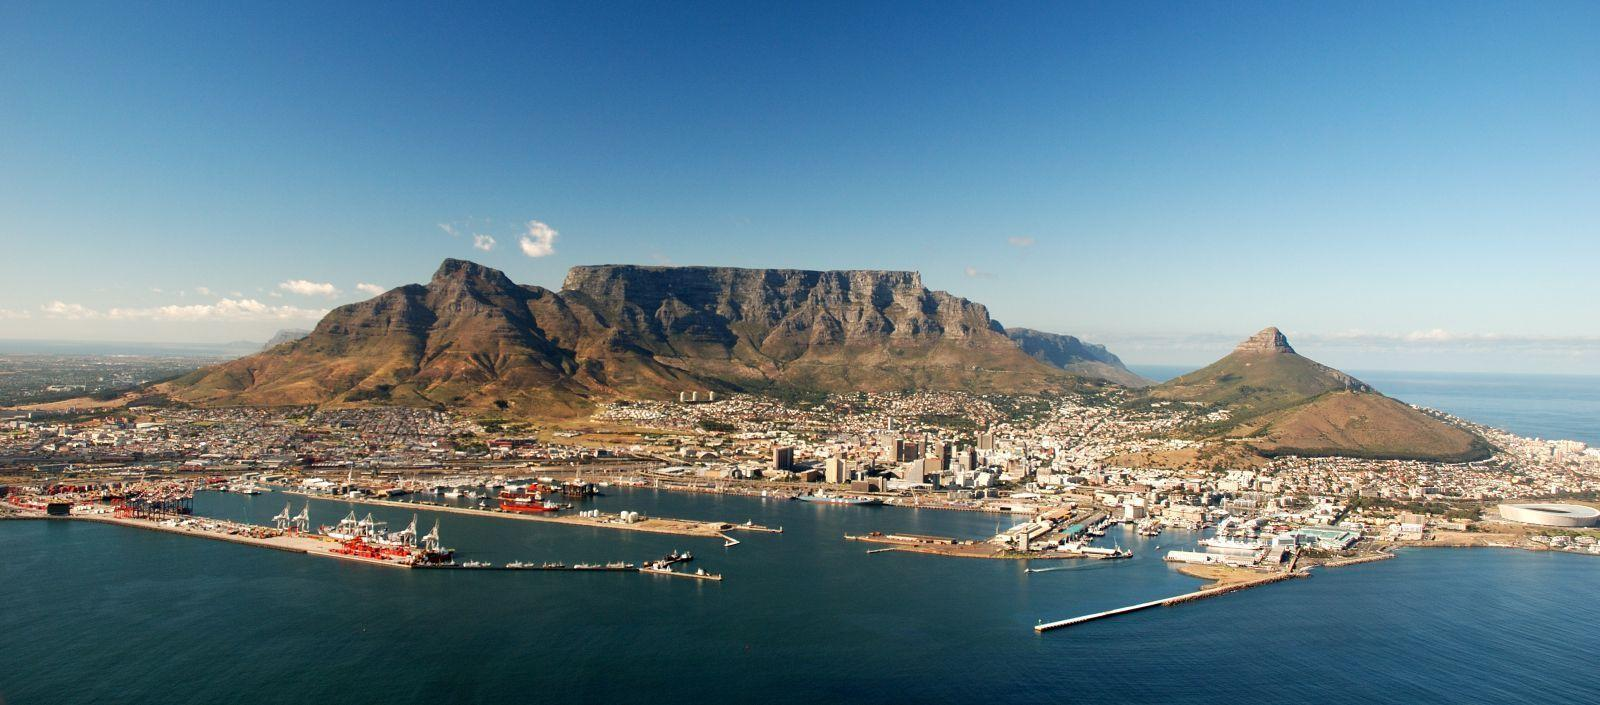 Table mountain in cape town south africa wallpaper Stock Free Images